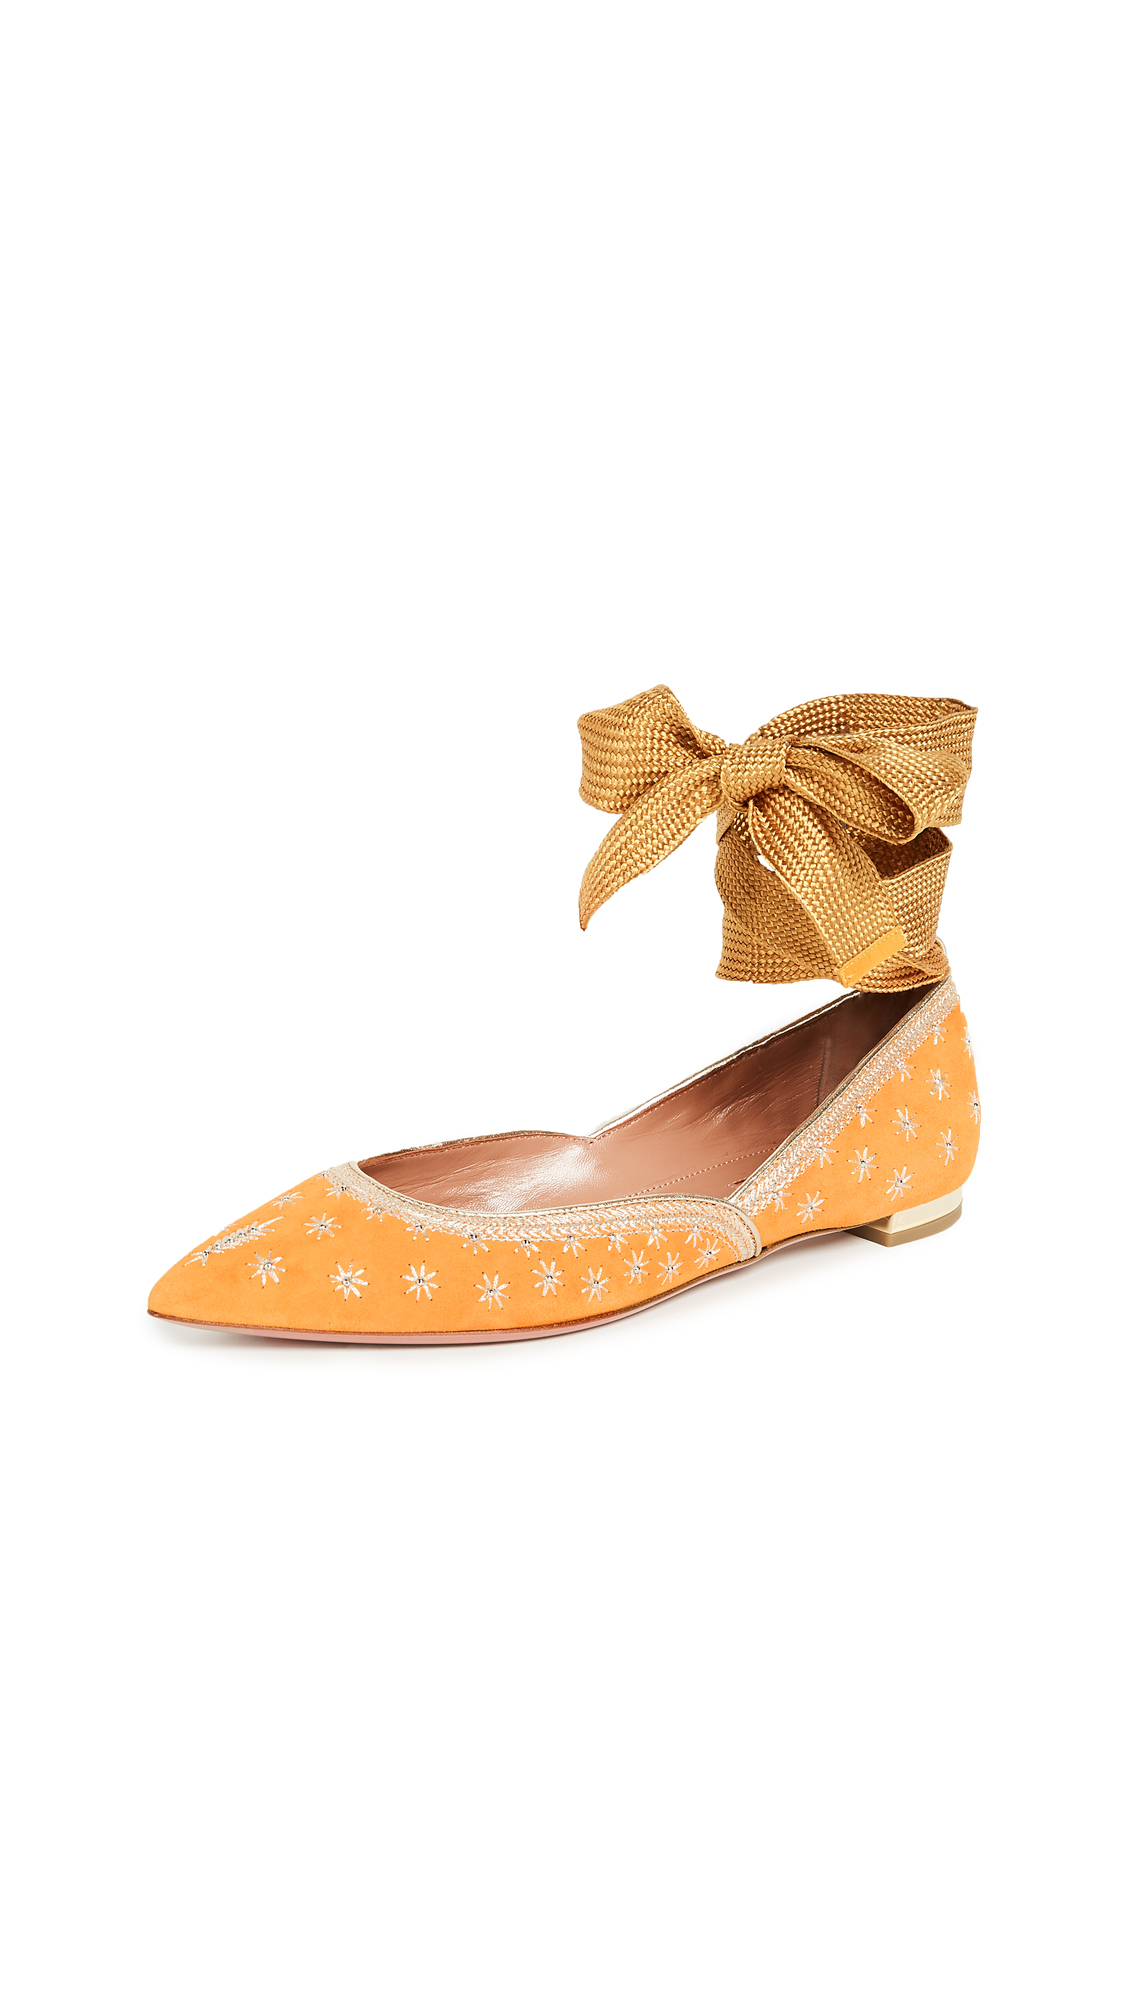 Aquazzura Bliss Ballet Flats - Sunshine Yellow